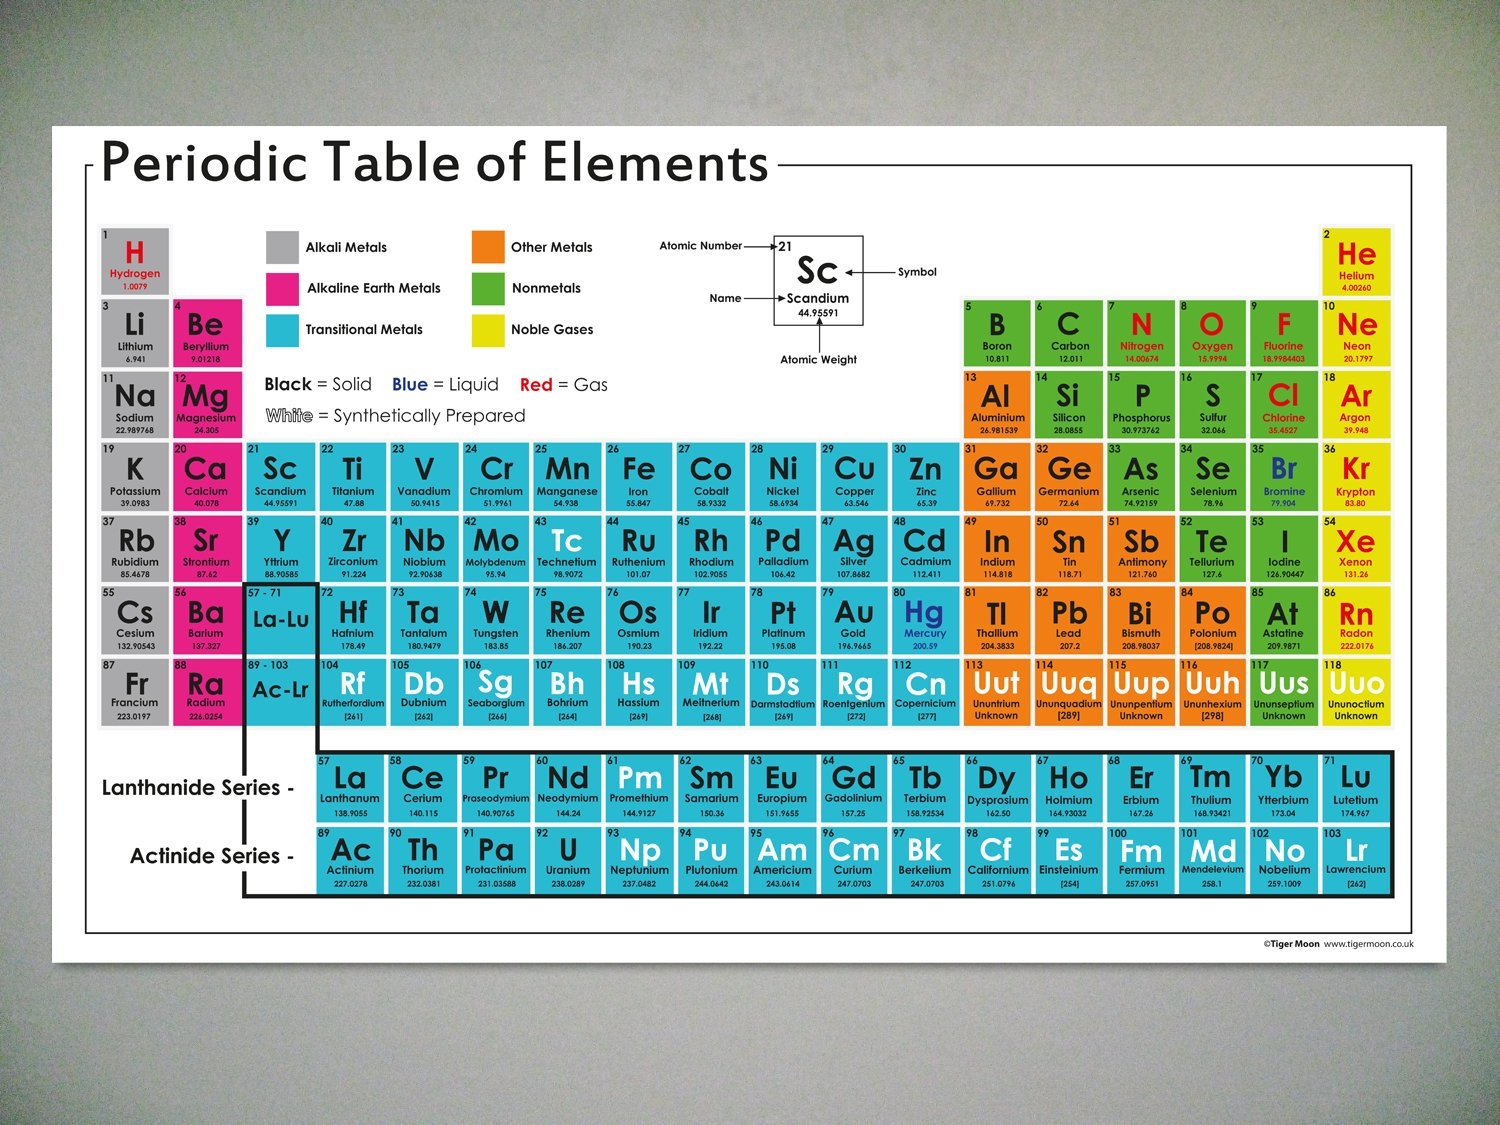 Giant vinyl periodic table of elements 200 x 120 cm school giant vinyl periodic table of elements 200 x 120 cm school science classroom resourcedecoration amazon office products urtaz Choice Image